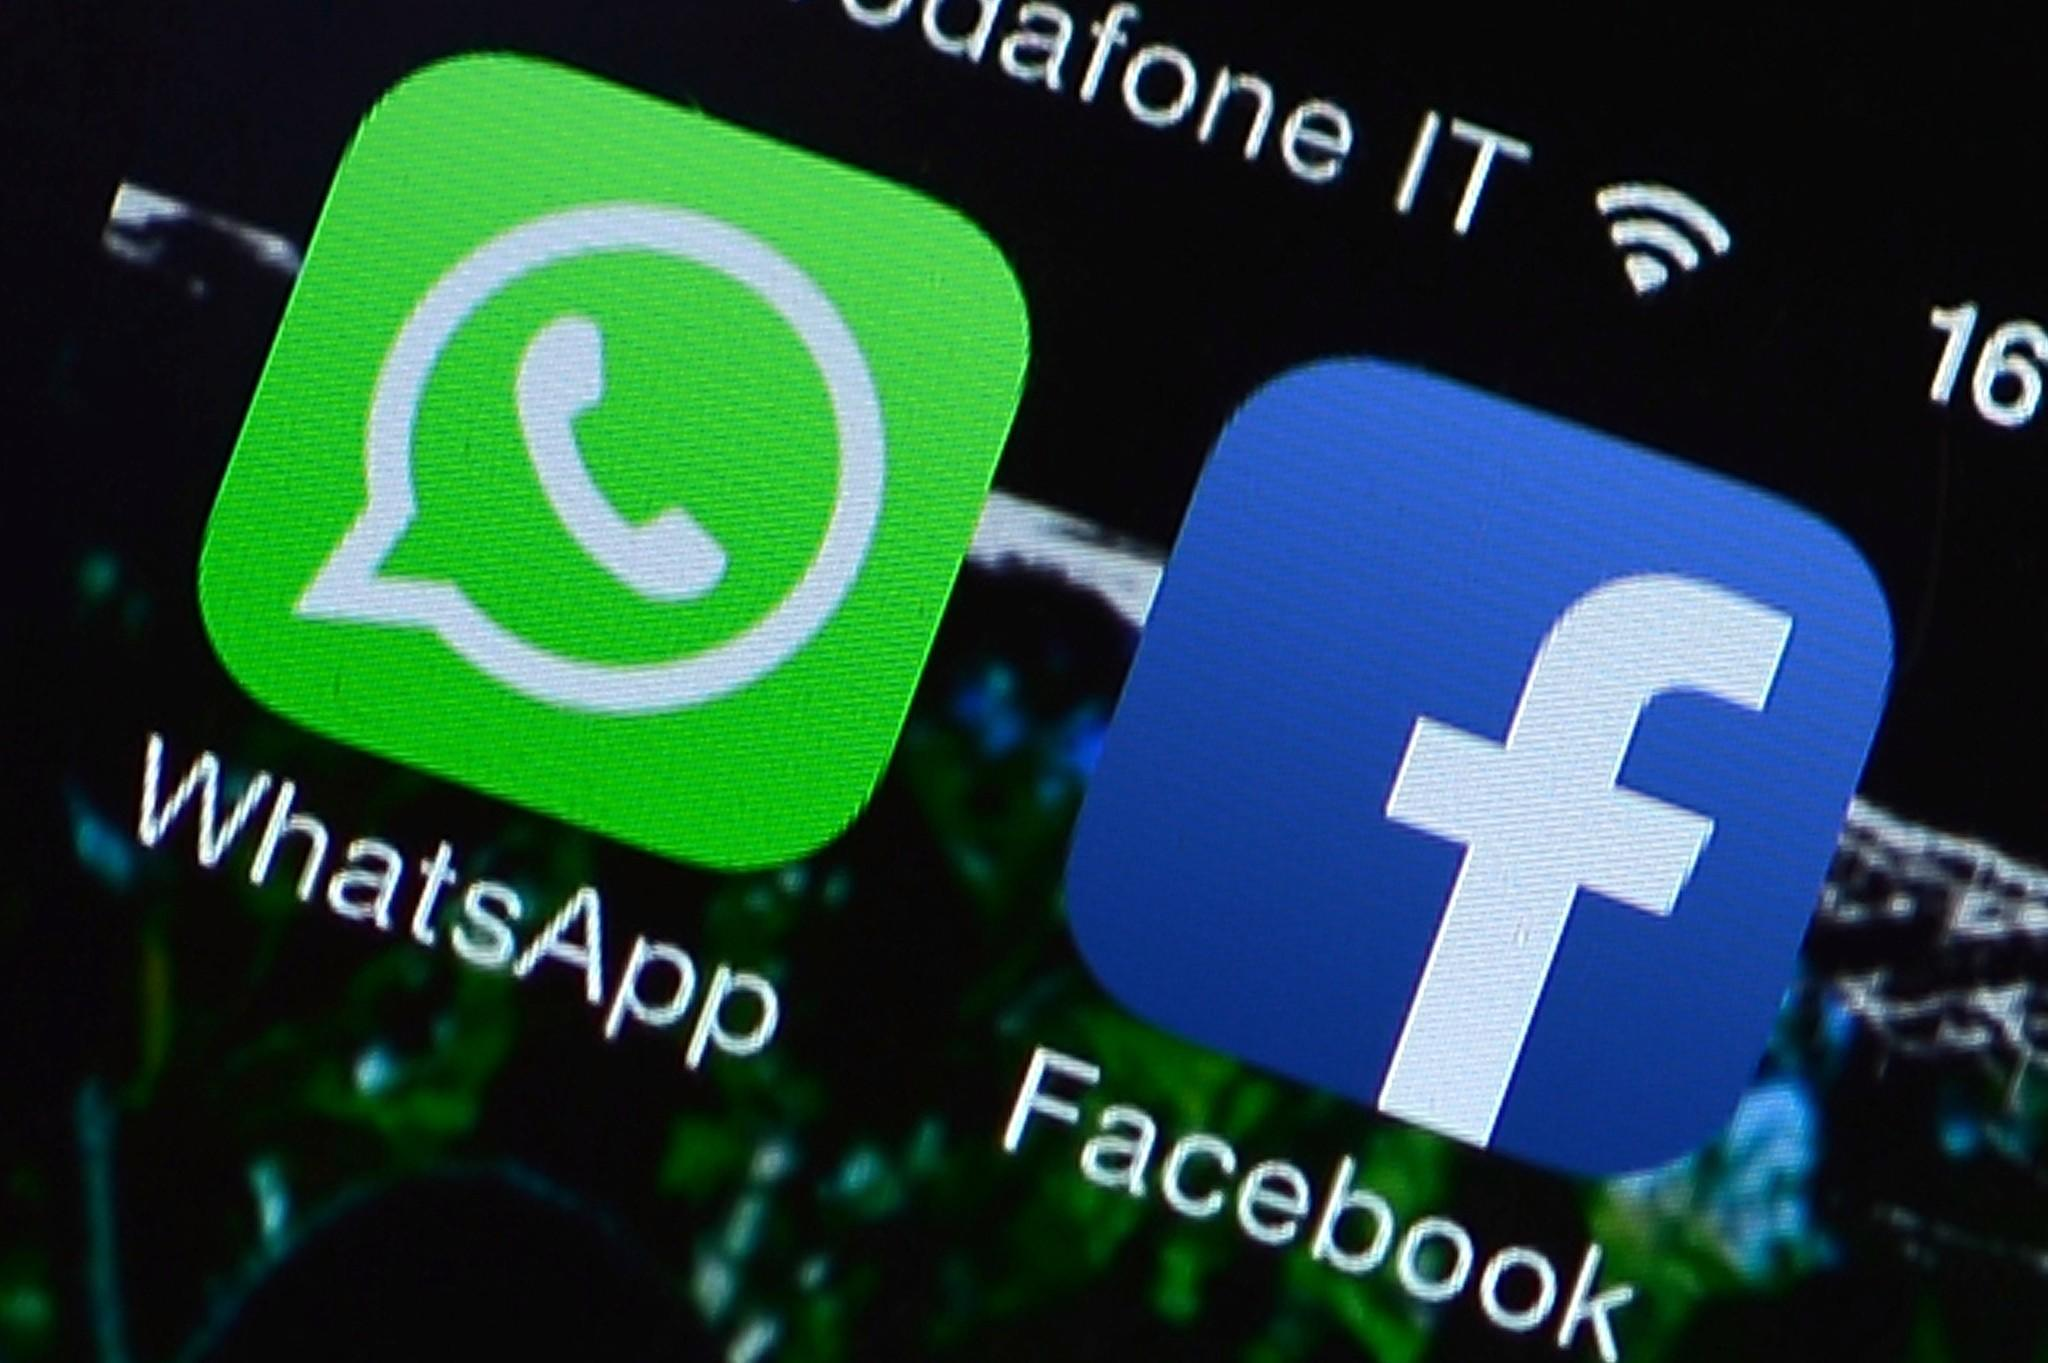 This file picture taken on Feb. 20 shows the Facebook and WhatsApp applications' icons displayed on a smartphone in Rome. Facebook's stunning $19 billion deal for messaging service WhatsApp places the social network in an arena where competition is fierce, particularly in Asia, where fast-growing chat rivals dominate their home markets.